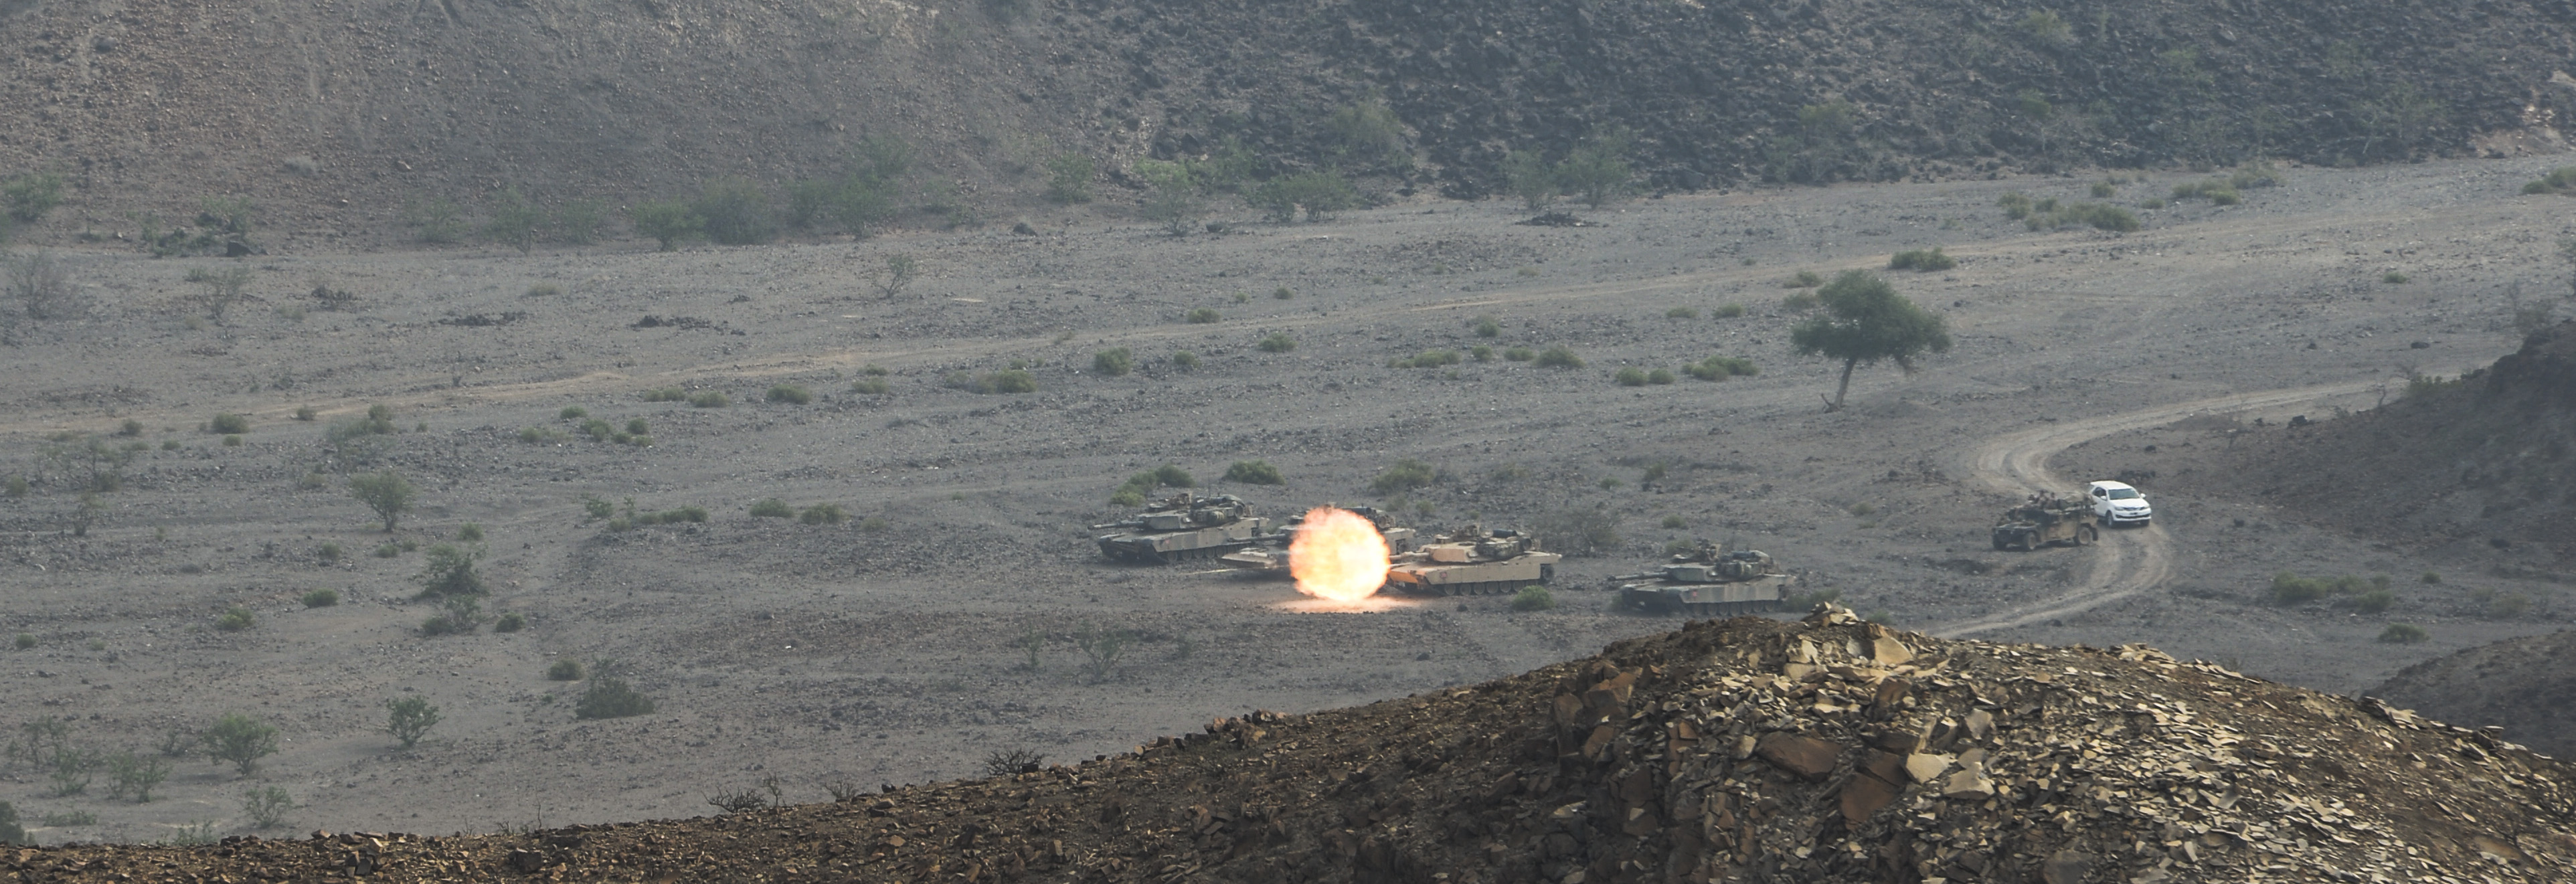 A U.S. Marine M1A main battle tank from the 24th Marine Expeditionary Unit (24th MEU) engages a simulated target during Exercise Alligator Dagger at Arta Range, Djibouti, April 9, 2017. The 24th MEU, part of the Bataan Amphibious Ready Group, is deployed to the U.S. 5th Fleet area of operations in support of maritime security operations designed to reassure allies and partners and preserve the freedom of navigation and the free flow of commerce in the region. (U.S. Air National Guard photo by Staff Sgt. Christian Jadot)